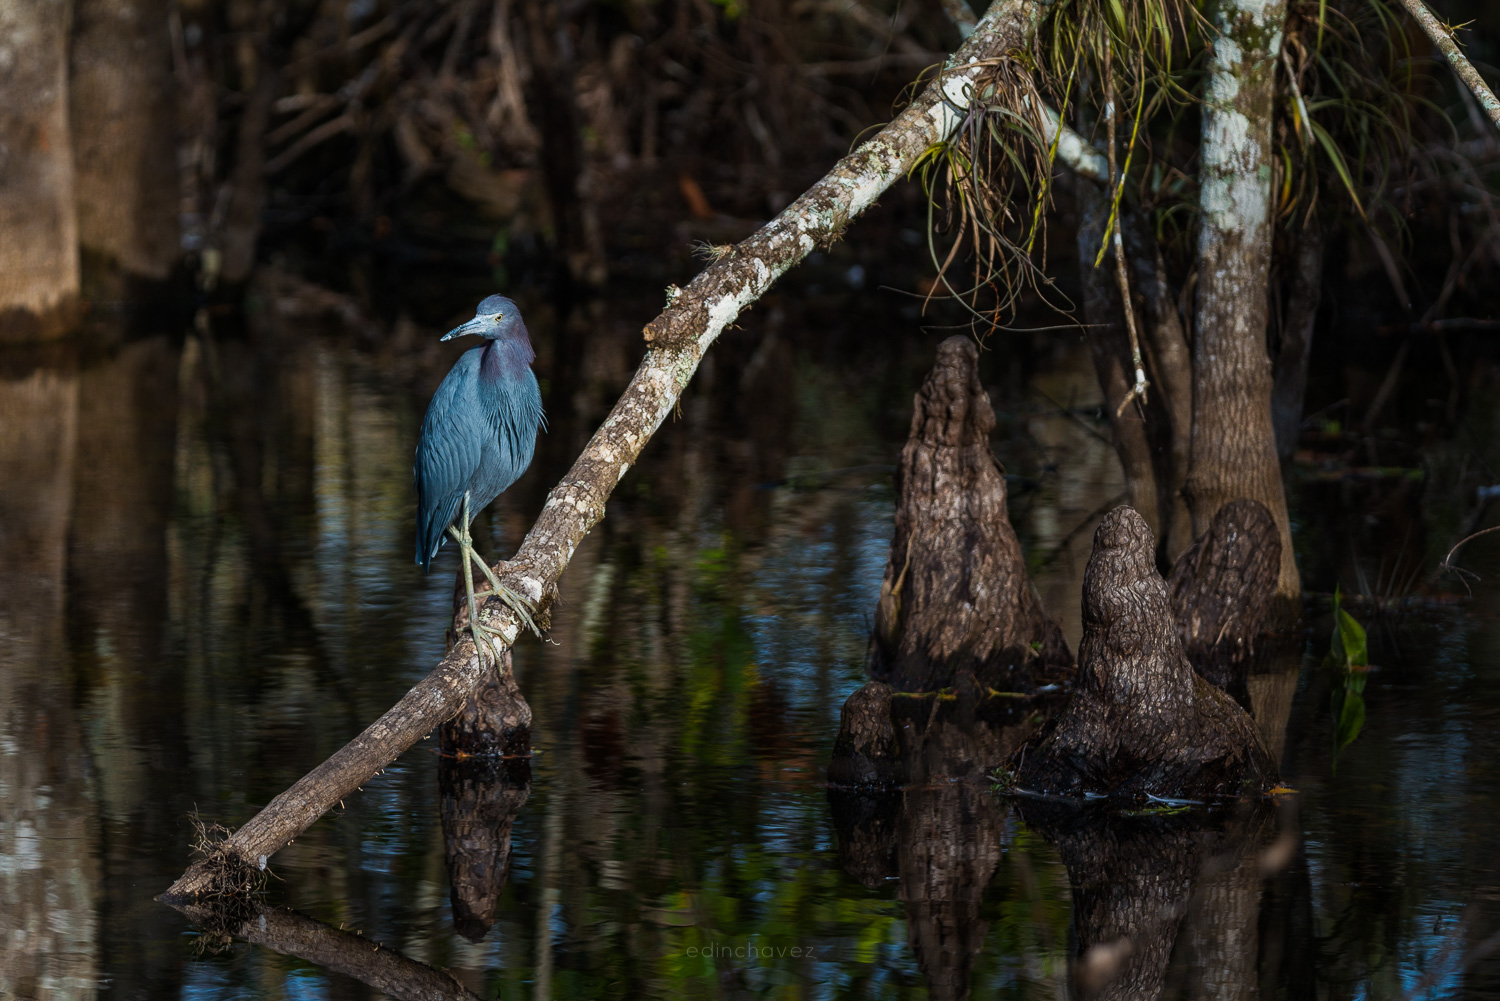 Tips and Tricks for Wildlife Photography